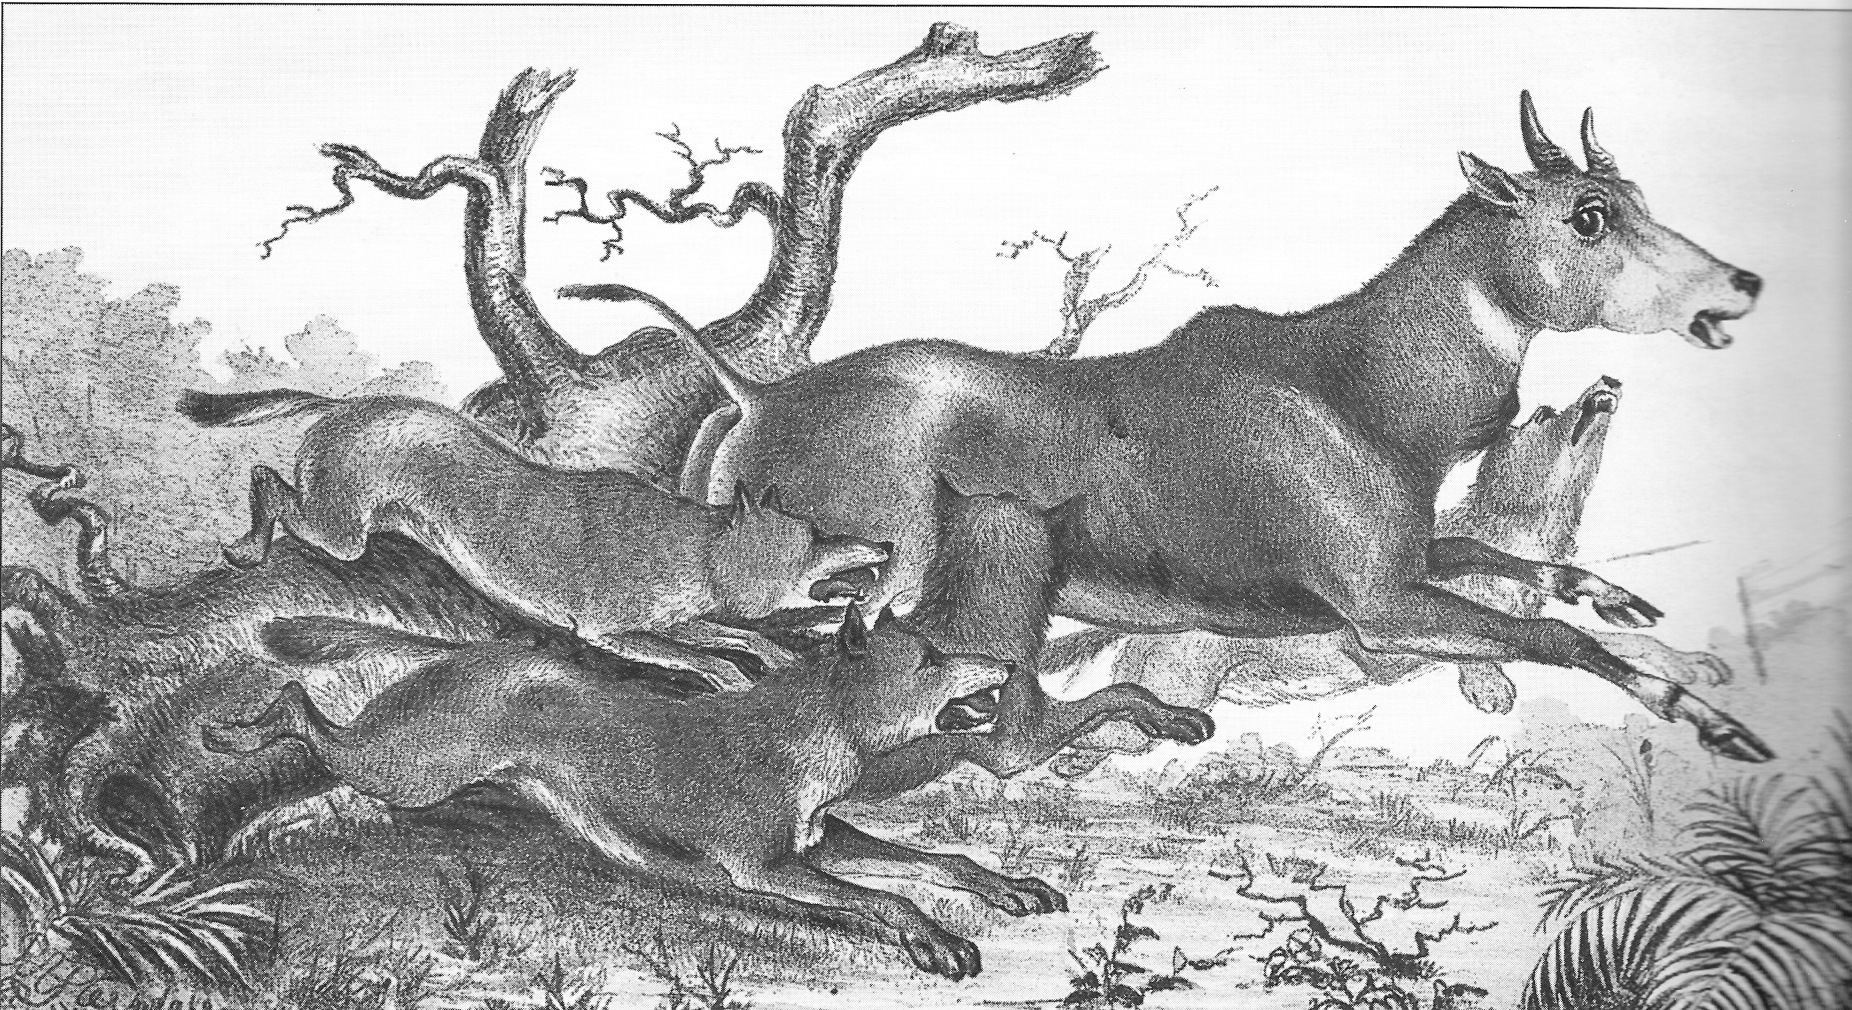 Dholes chasing a nilgai, as drawn by Robert Armitage Sterndale in Denizens of the Jungles, 1886